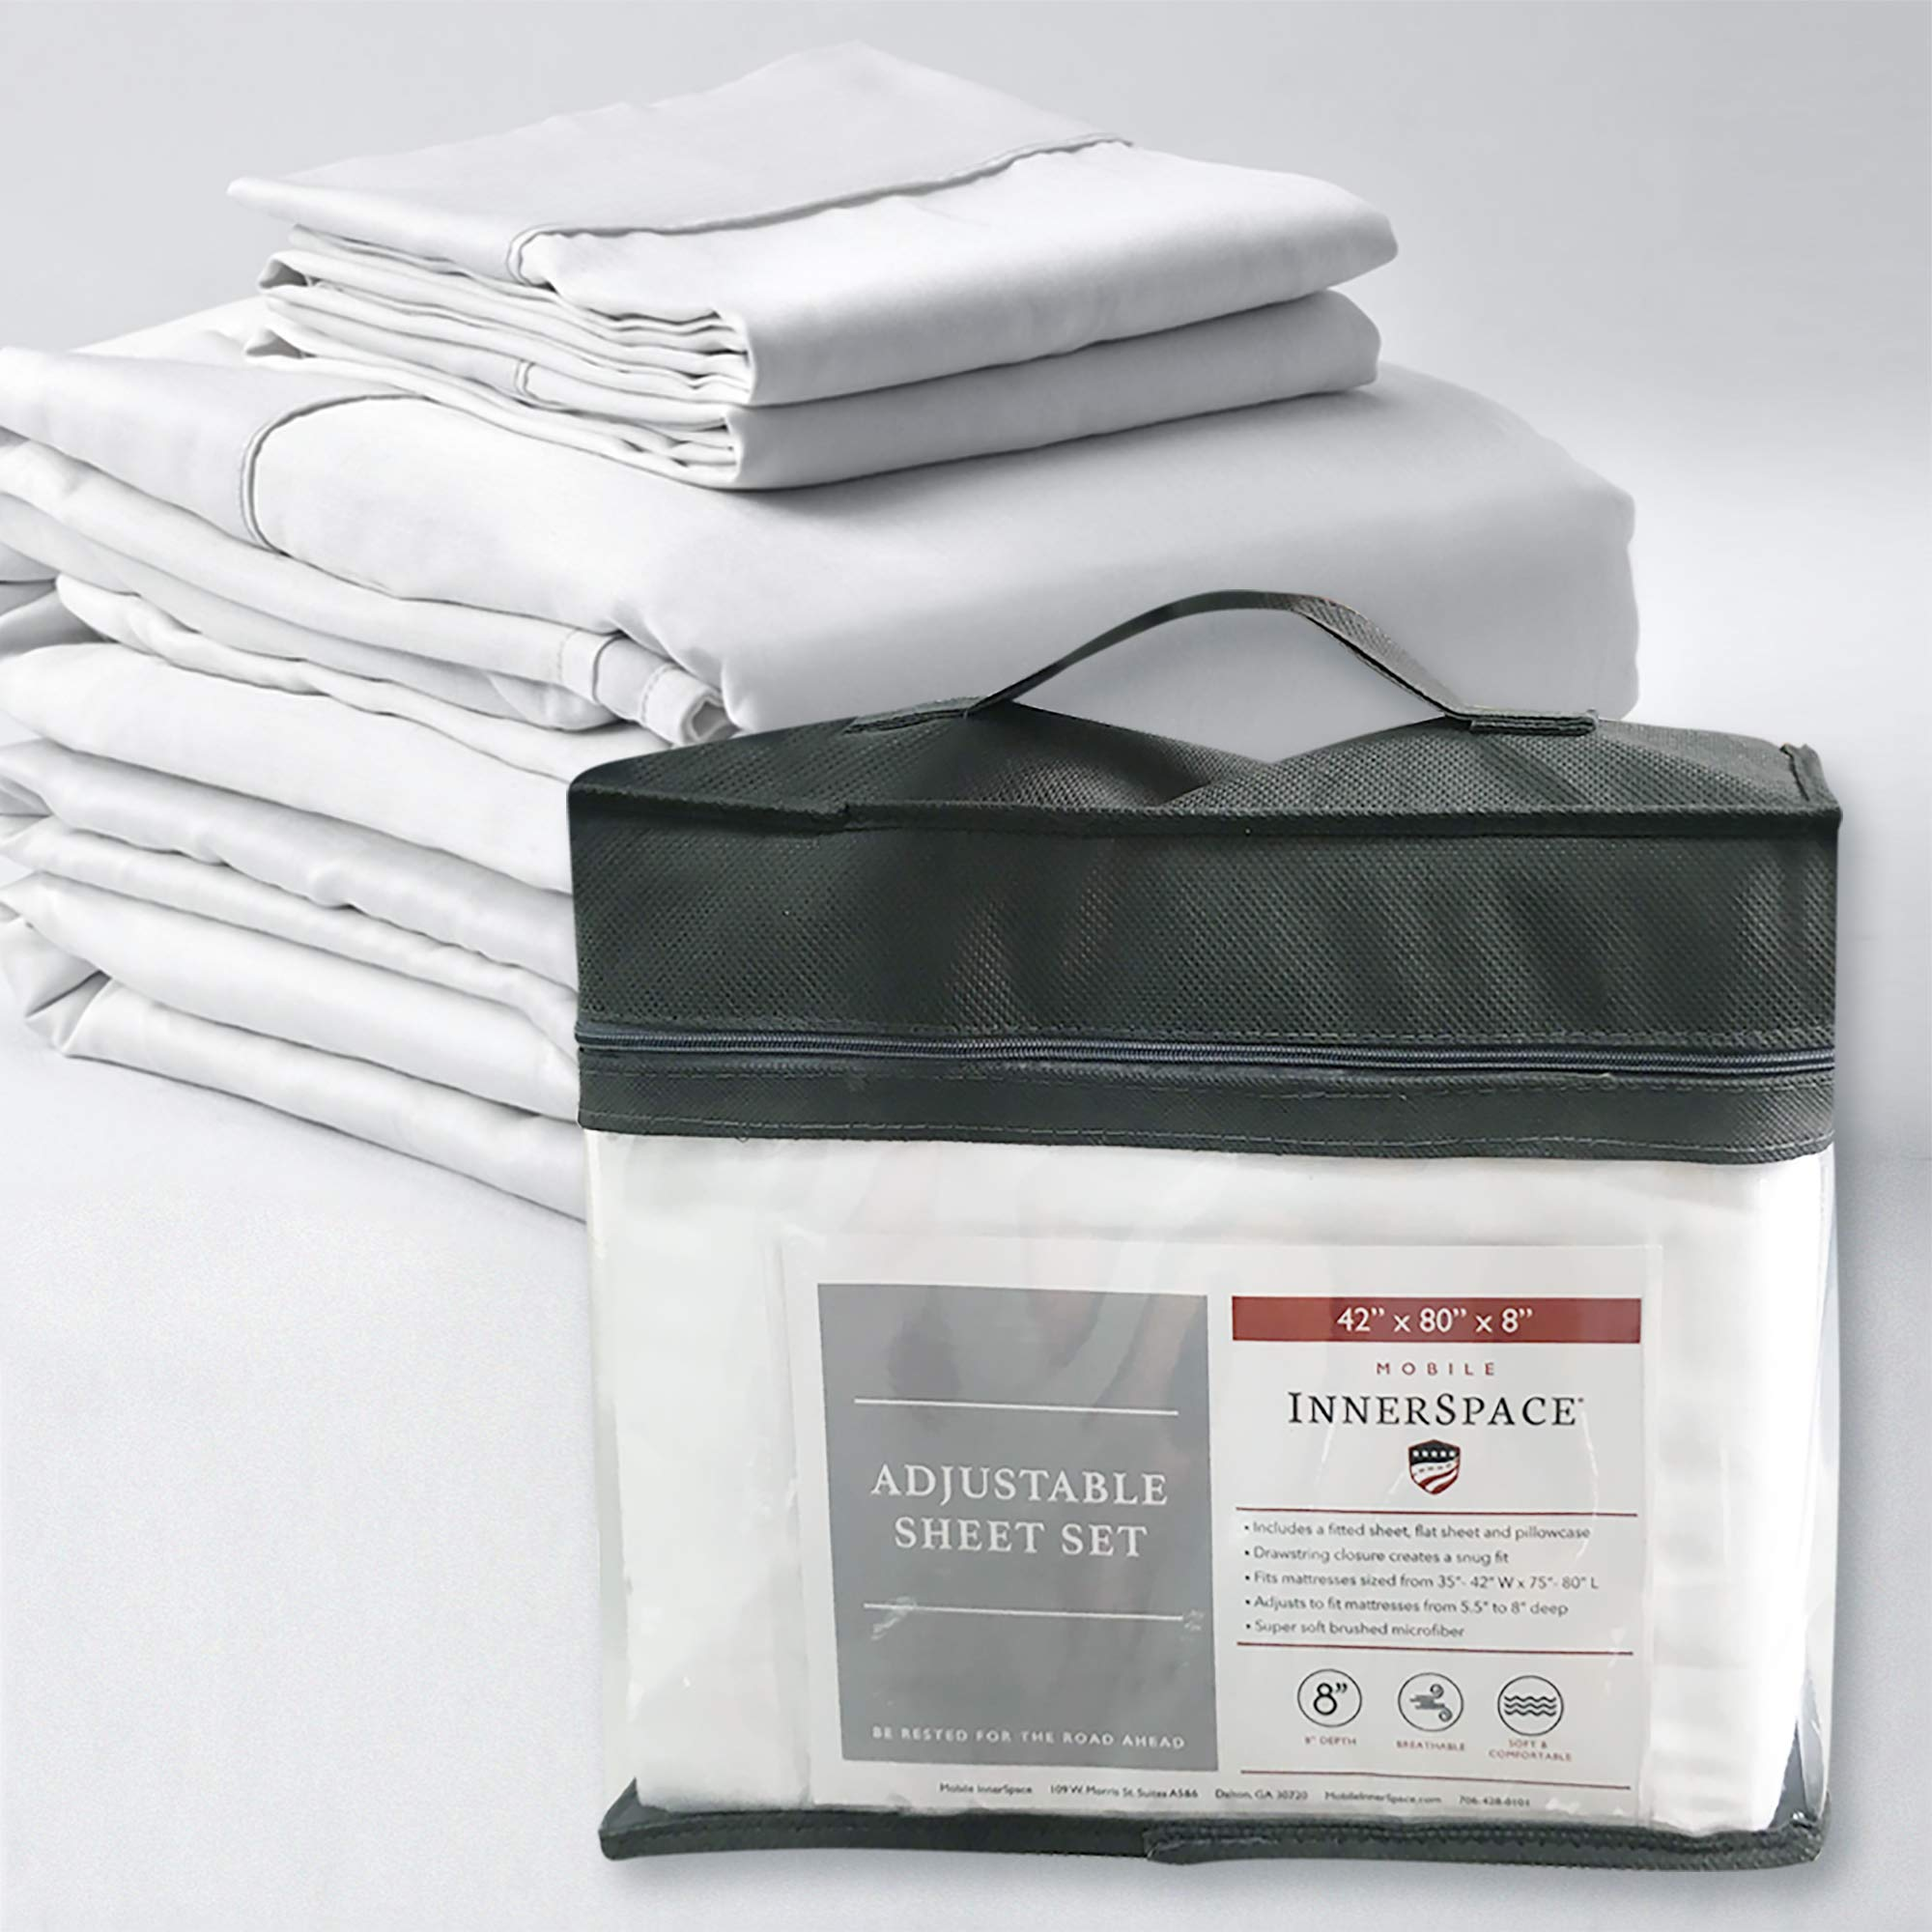 MOBILE INNERSPACE SH-WH-42808 Sheet Set by MOBILE INNERSPACE